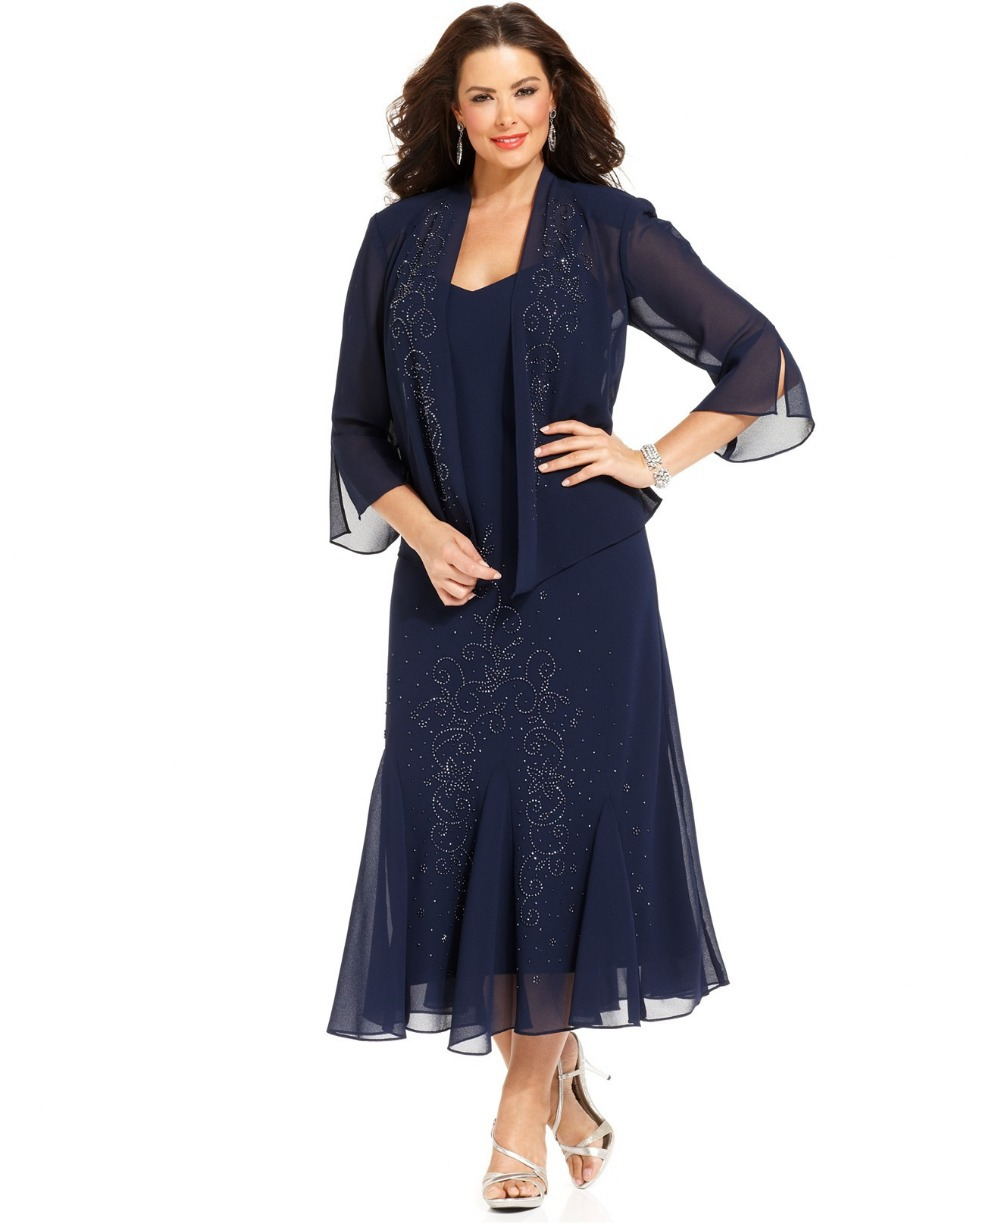 Plus Size Mother Bride Dresses: 2017 Navy Blue Plus Size Chiffon Jacket Tea Length Mother